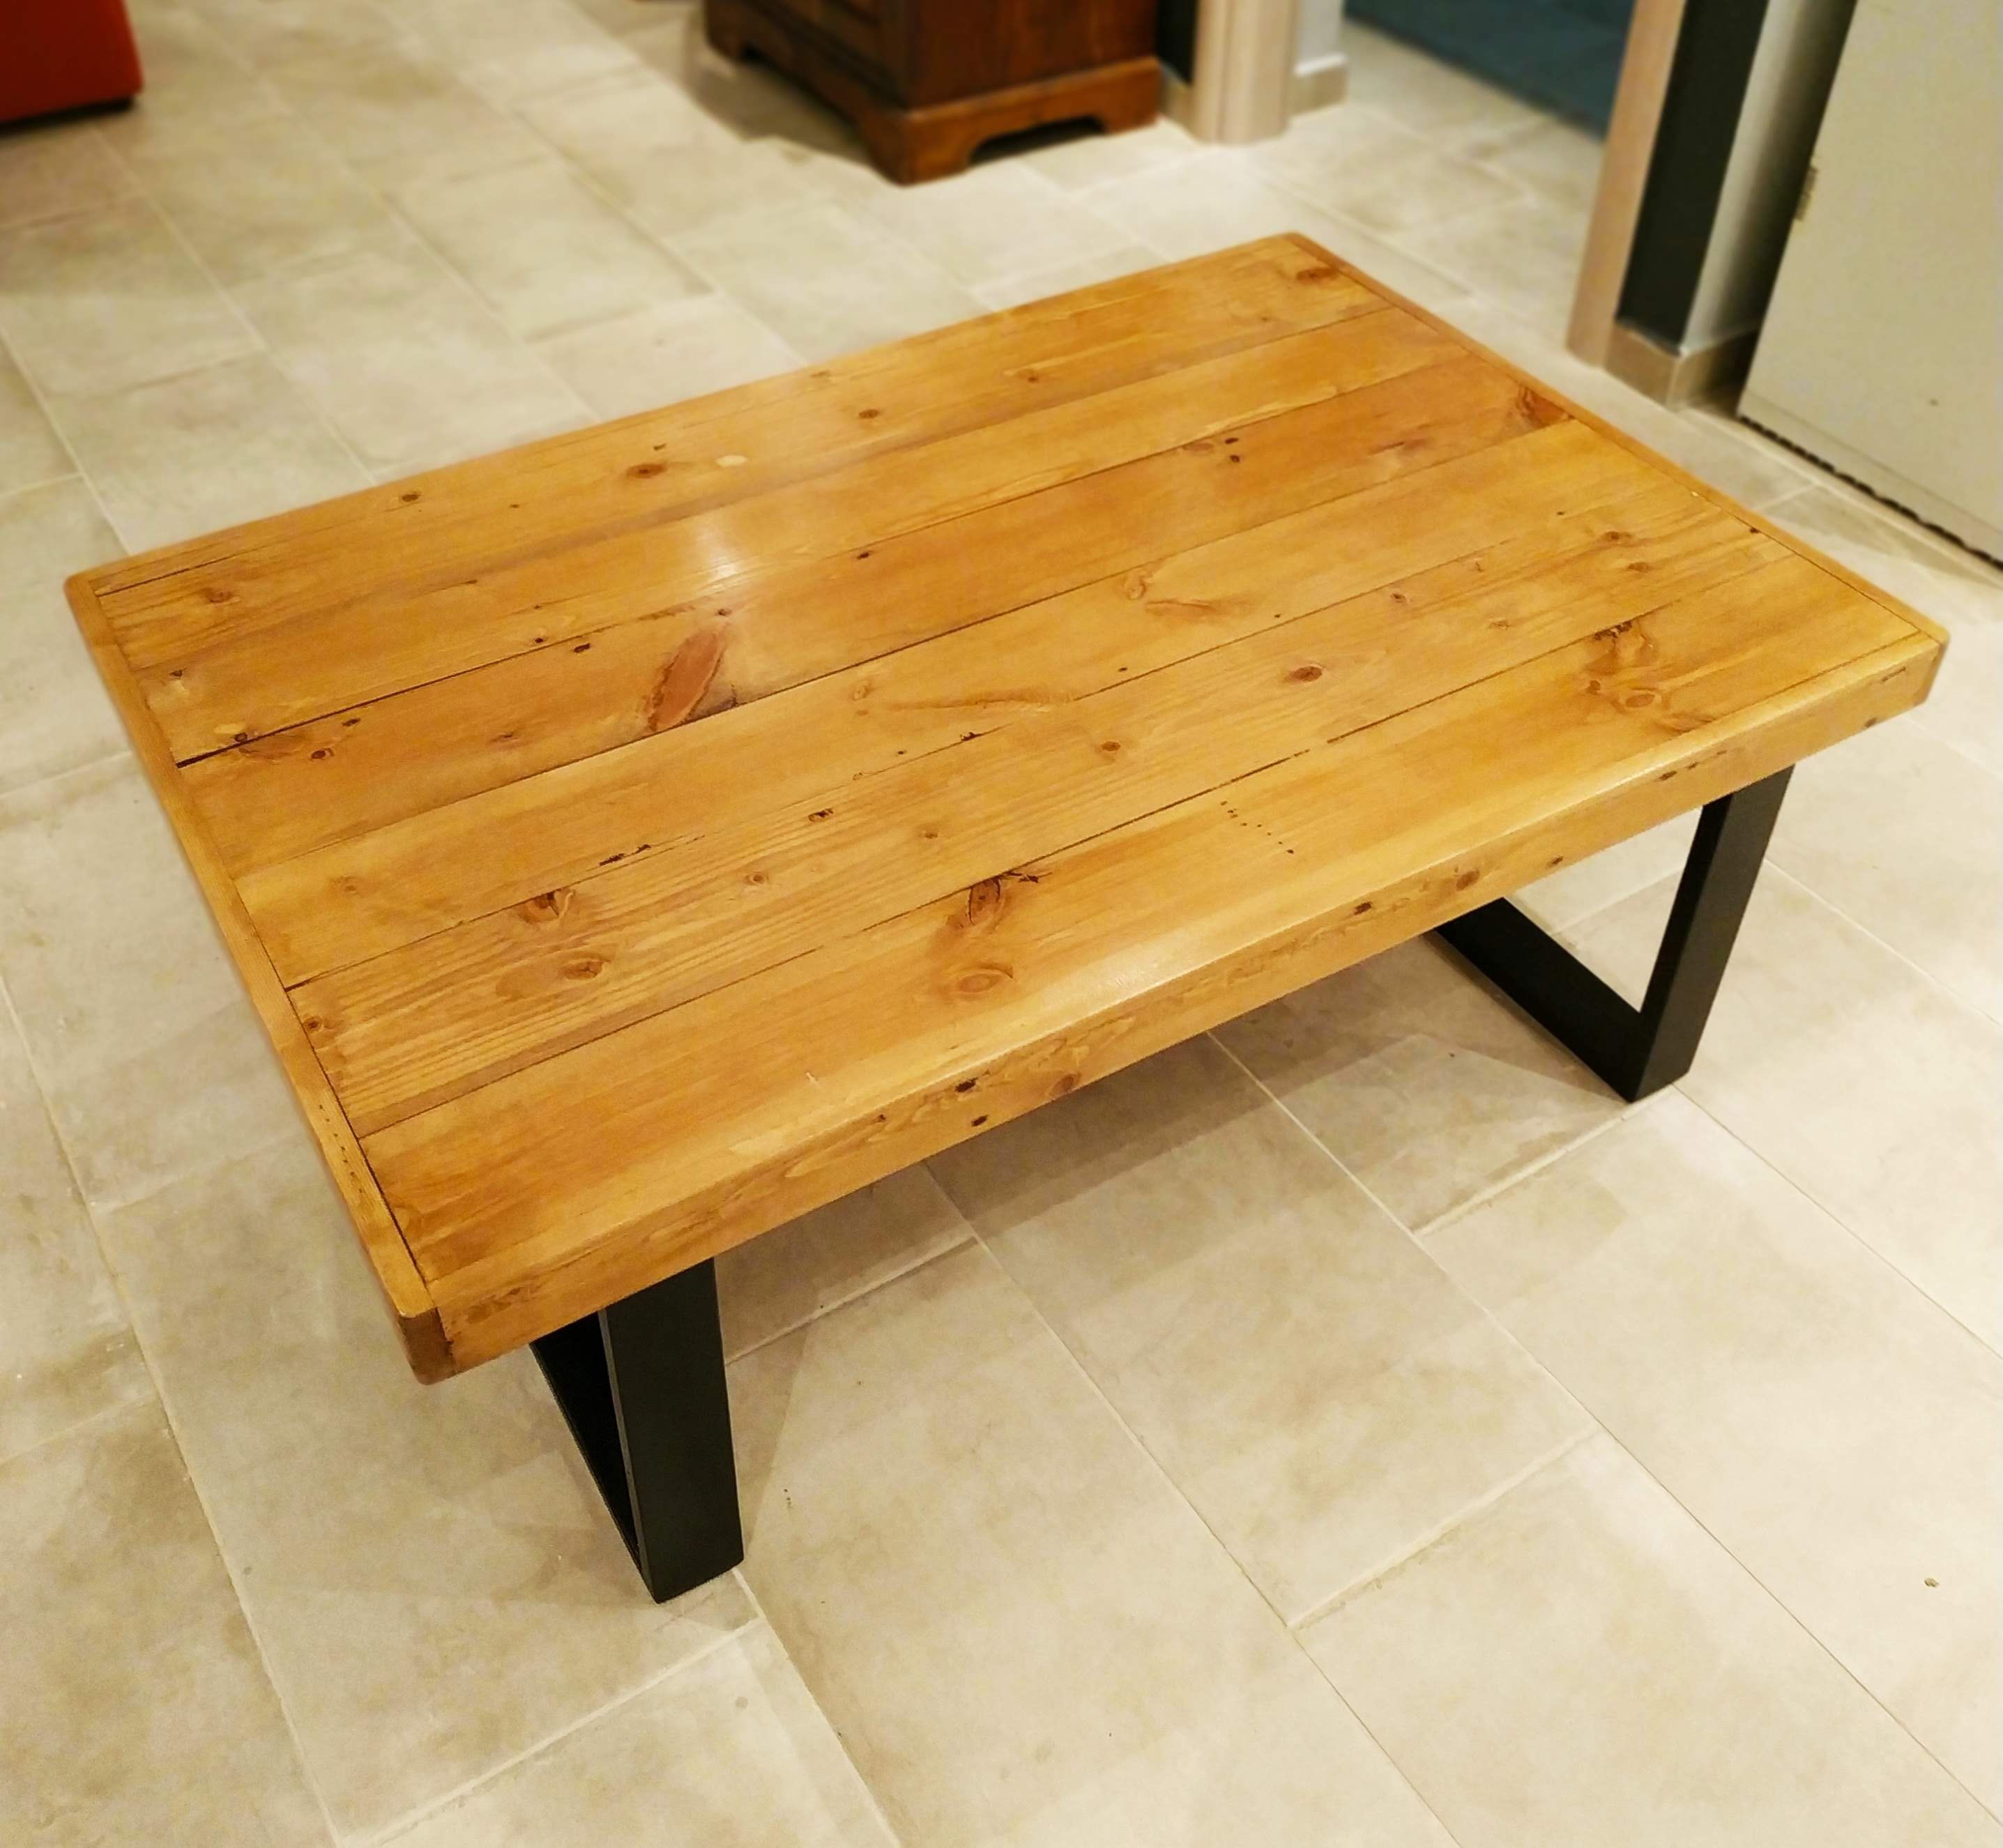 #woodentable #woodworking #table #wood #homedecor #interiordesign #wooden #woodwork #interior #woodtable #epoxytable #homedesign #rustic #solidwood #furniture #woodworker #coffeetable #woodenfurniture #boomstamtafel #vintage #tabledecor #liveedgetable #stocic #rucnirad #suarwood #solidtable #diningtable #tabletop #suarwoodsg #bhfyp